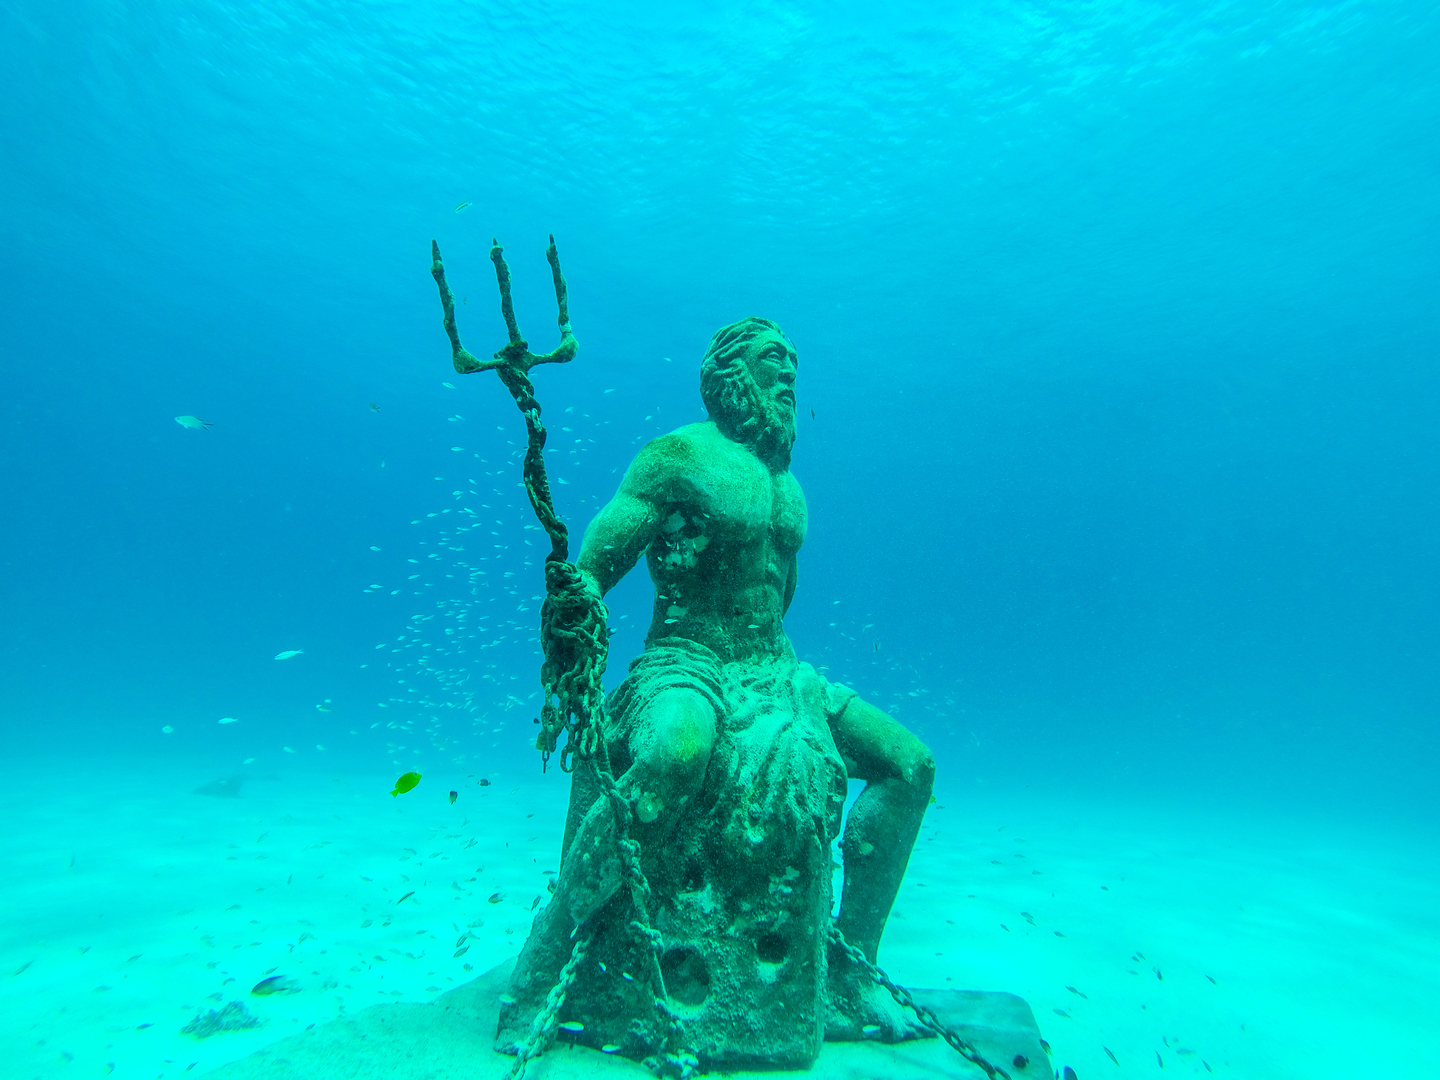 a submerged statue of Poseidon holding his trident